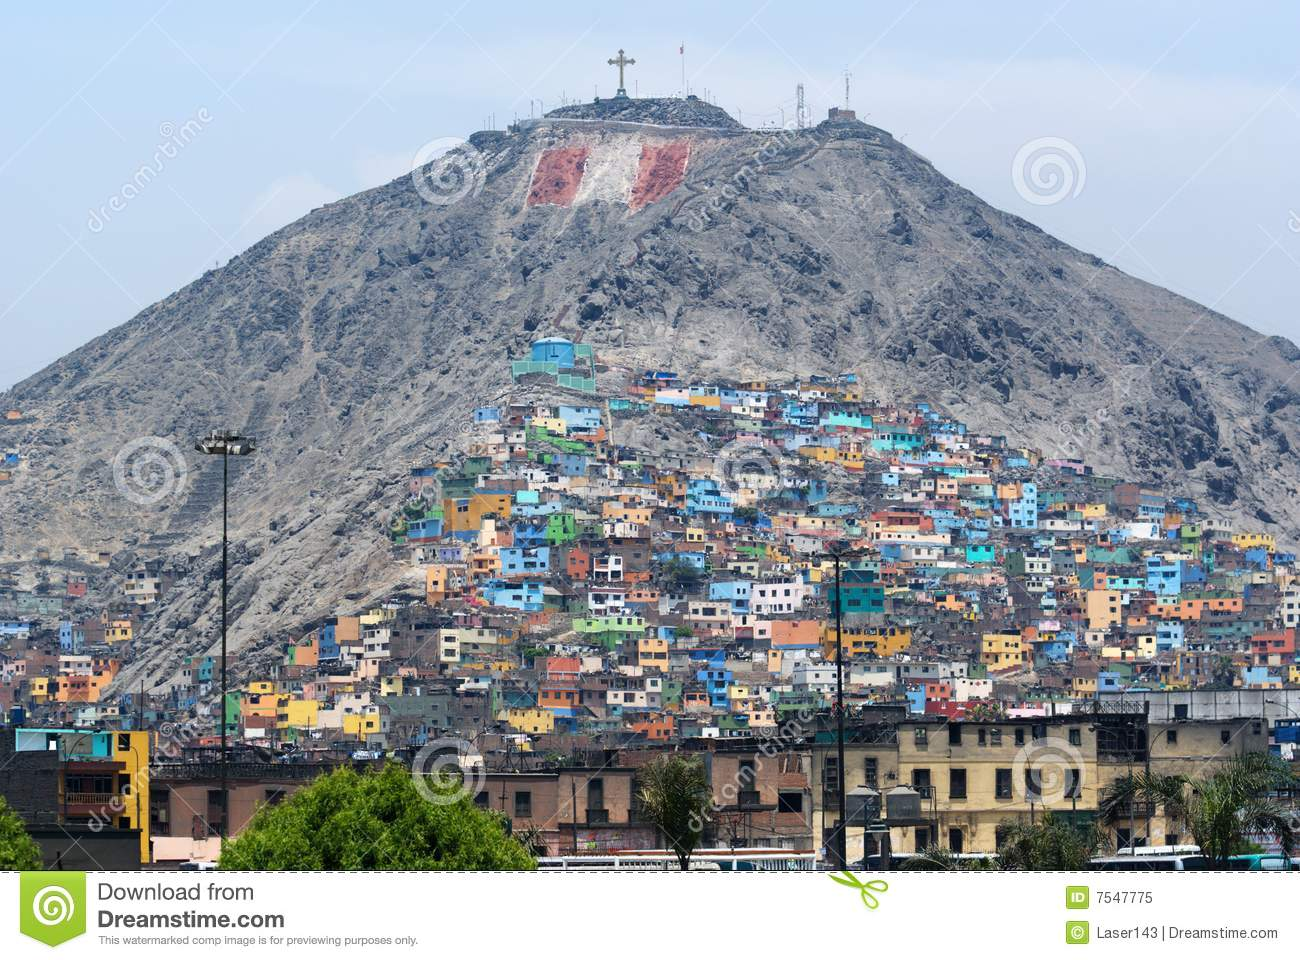 the problems of lima city Driving through the outskirts of lima presents an entirely different view of the city structure, one that someone wouldn't necessarily pick up on if they stayed in the hotspots of barranco, miraflores, or san isidro.